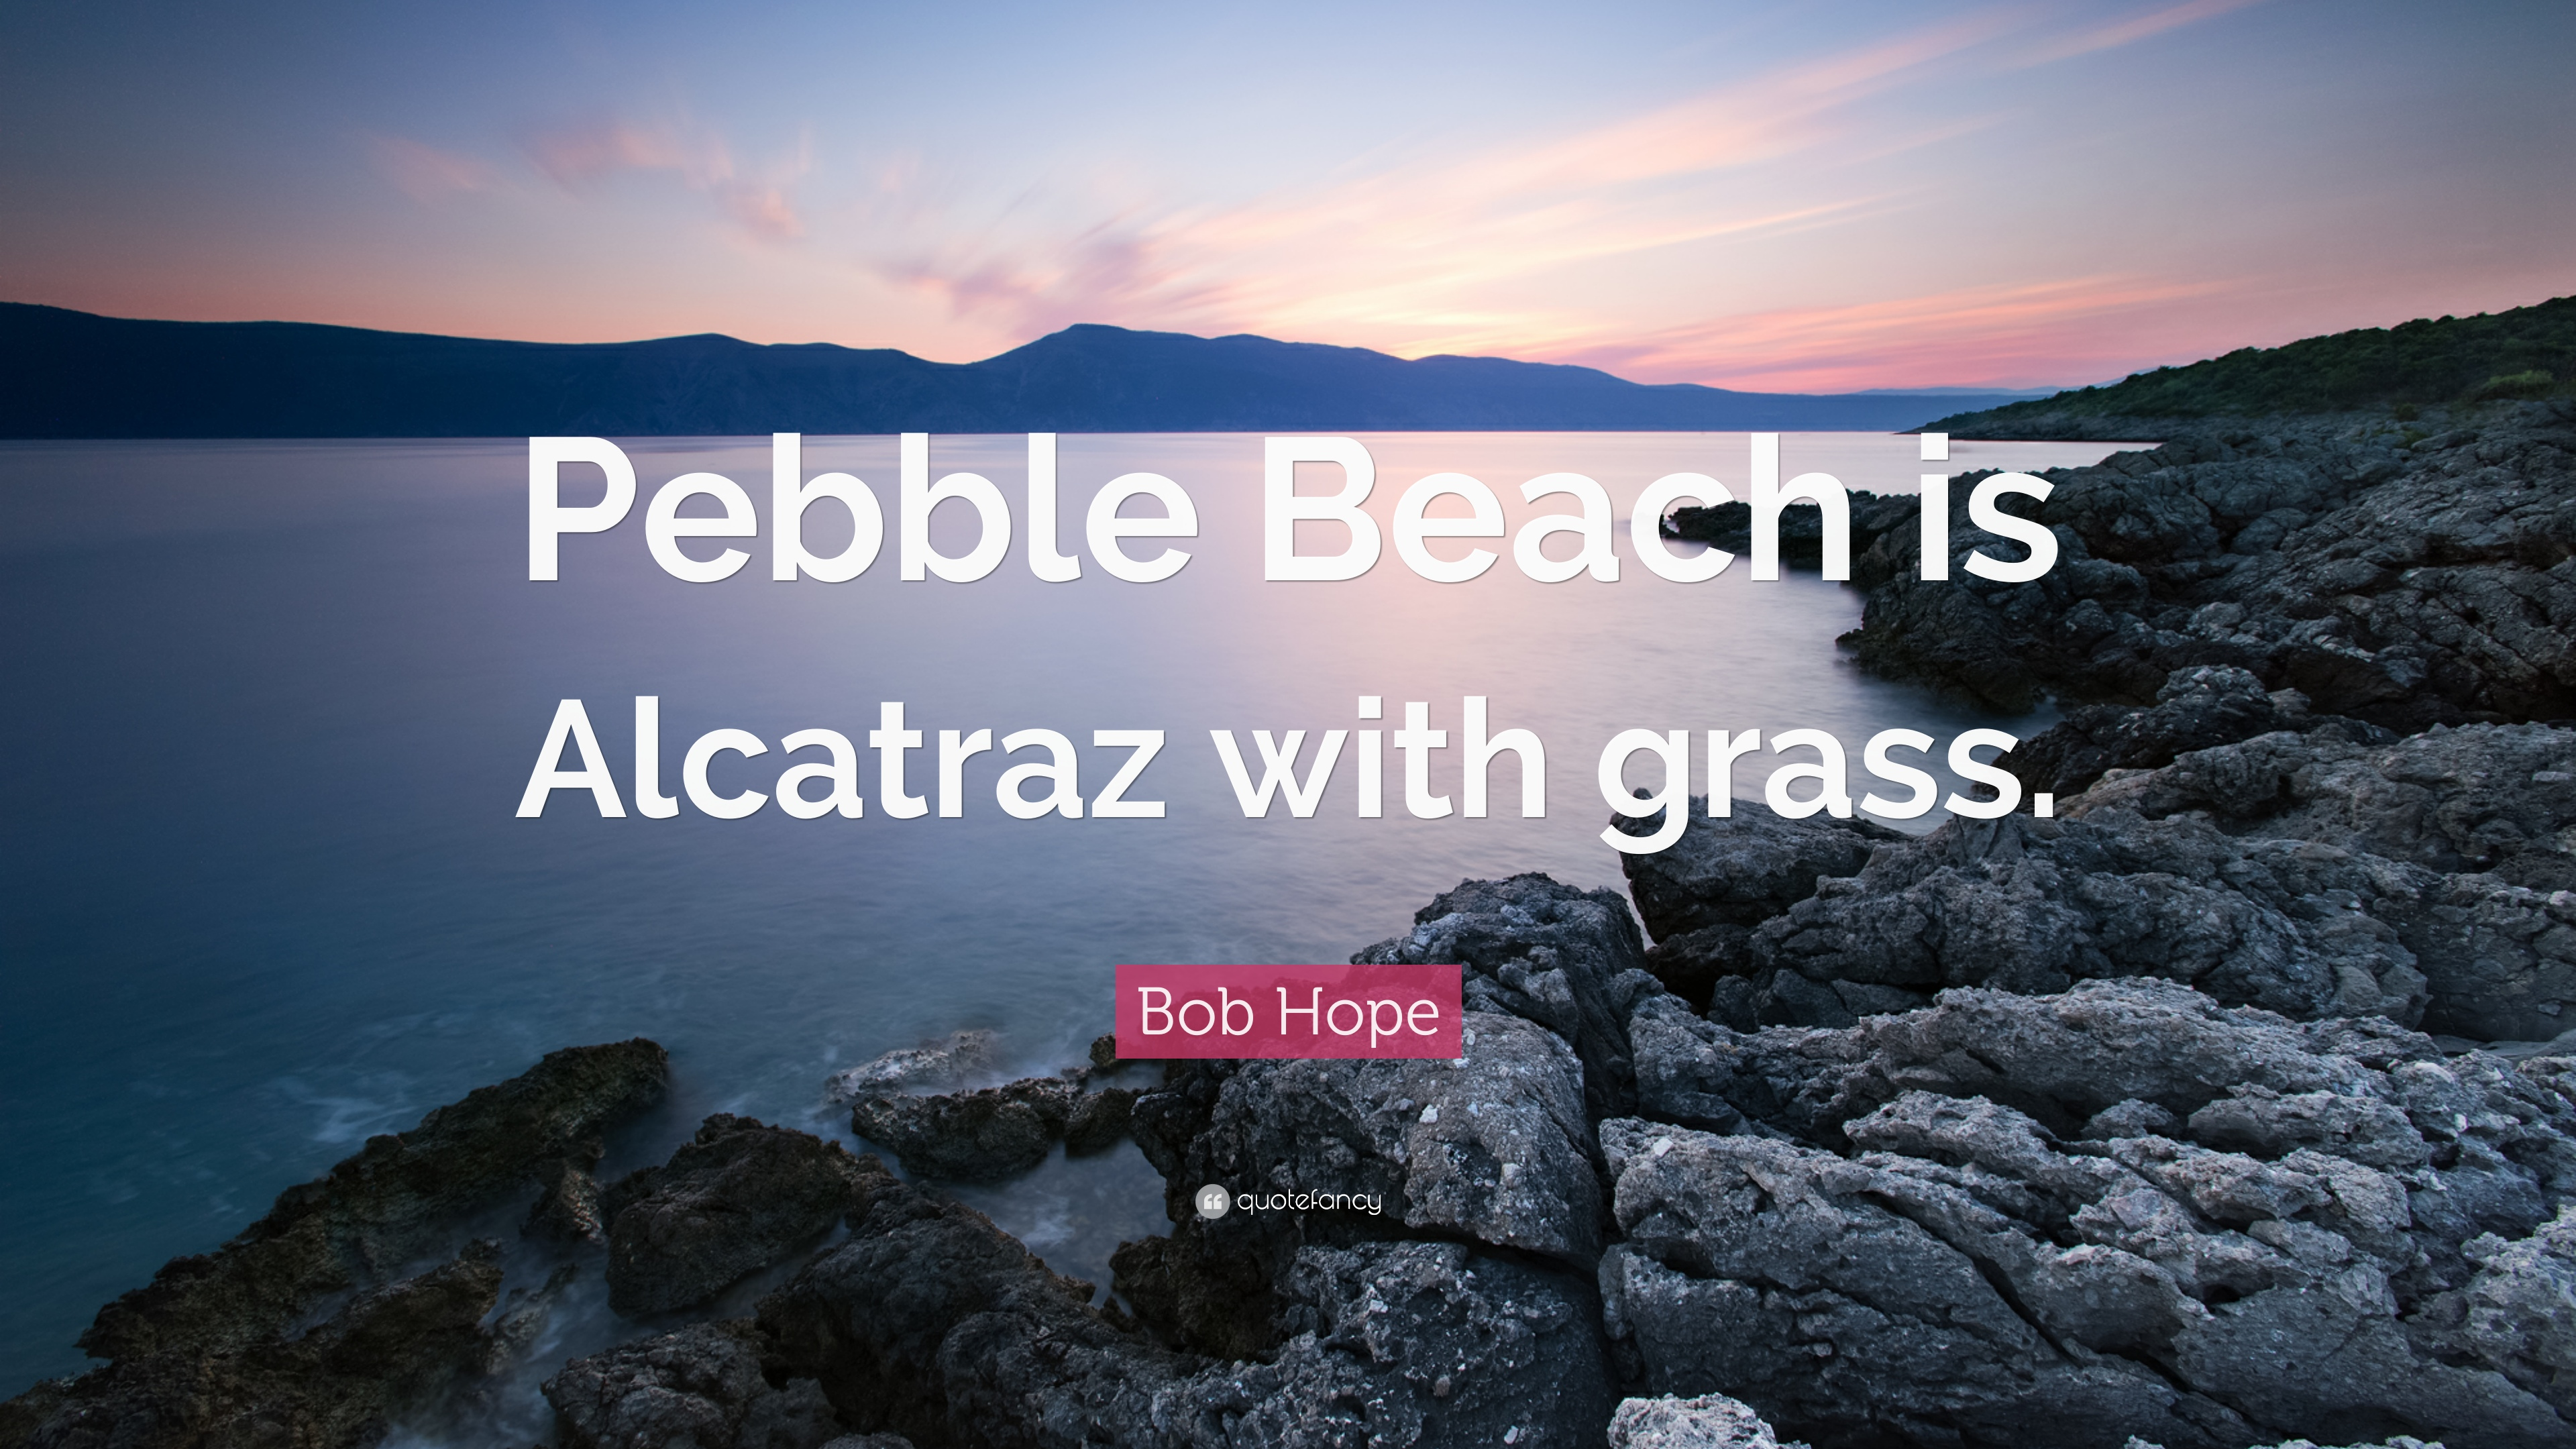 """bob hope quote: """"pebble beach is alcatraz with grass."""" (7 wallpapers"""